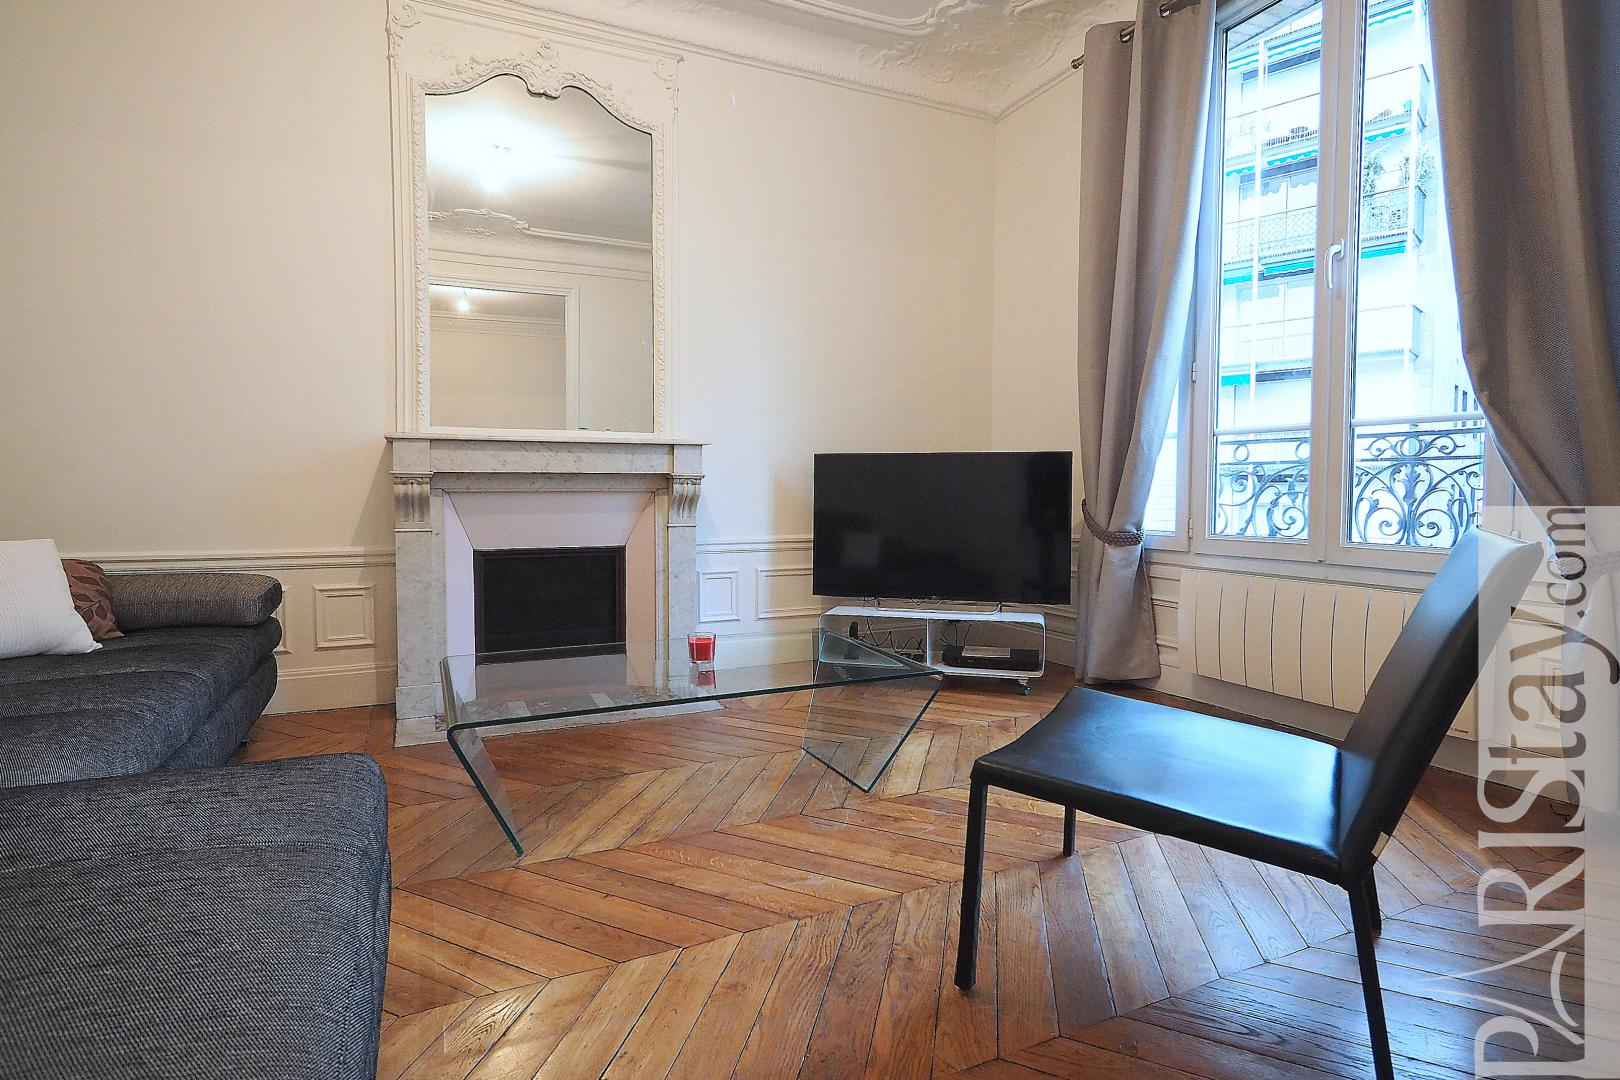 Location Appartement Meuble Paris Passy Trocadero